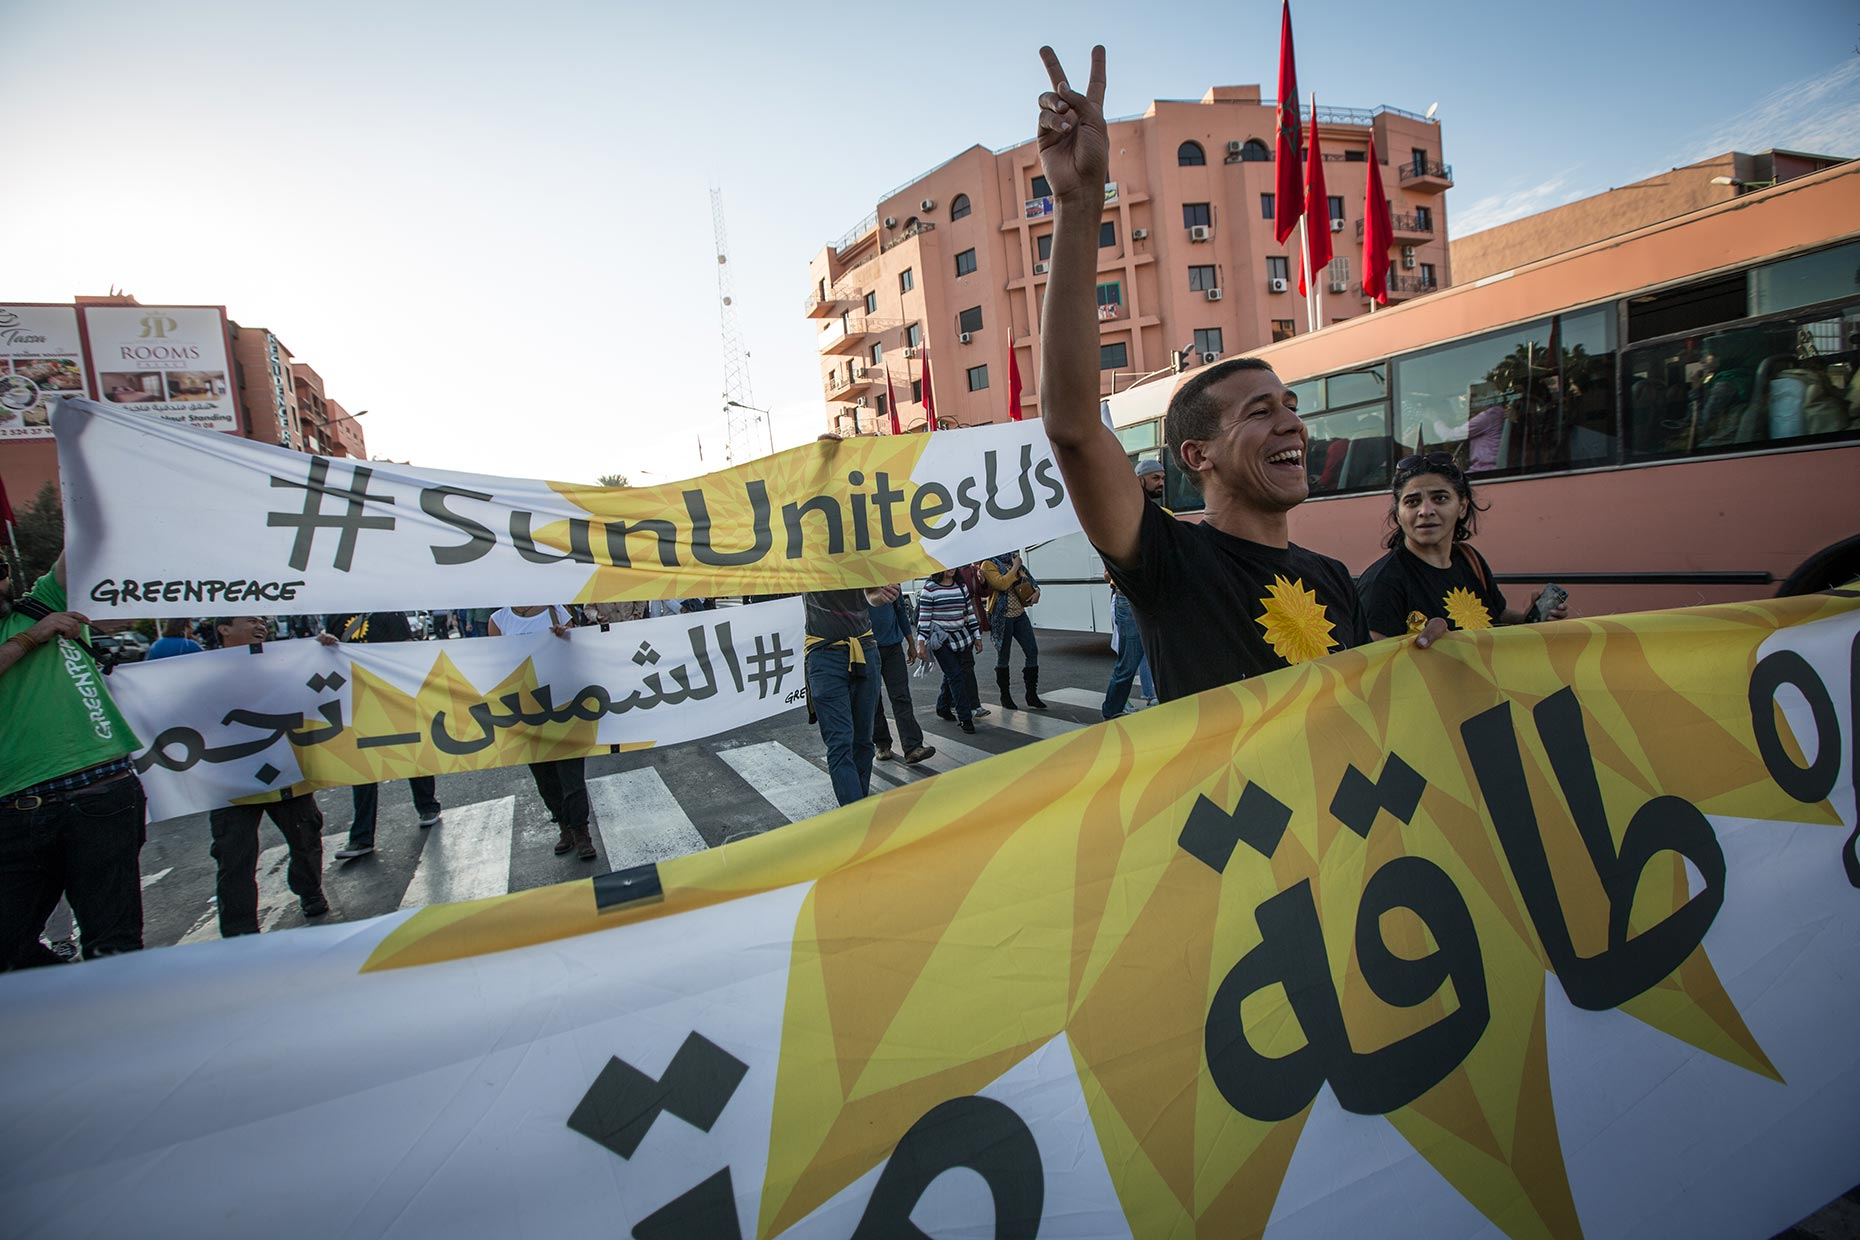 Greenpeace demonstration in Morocco, by Scotland photographer